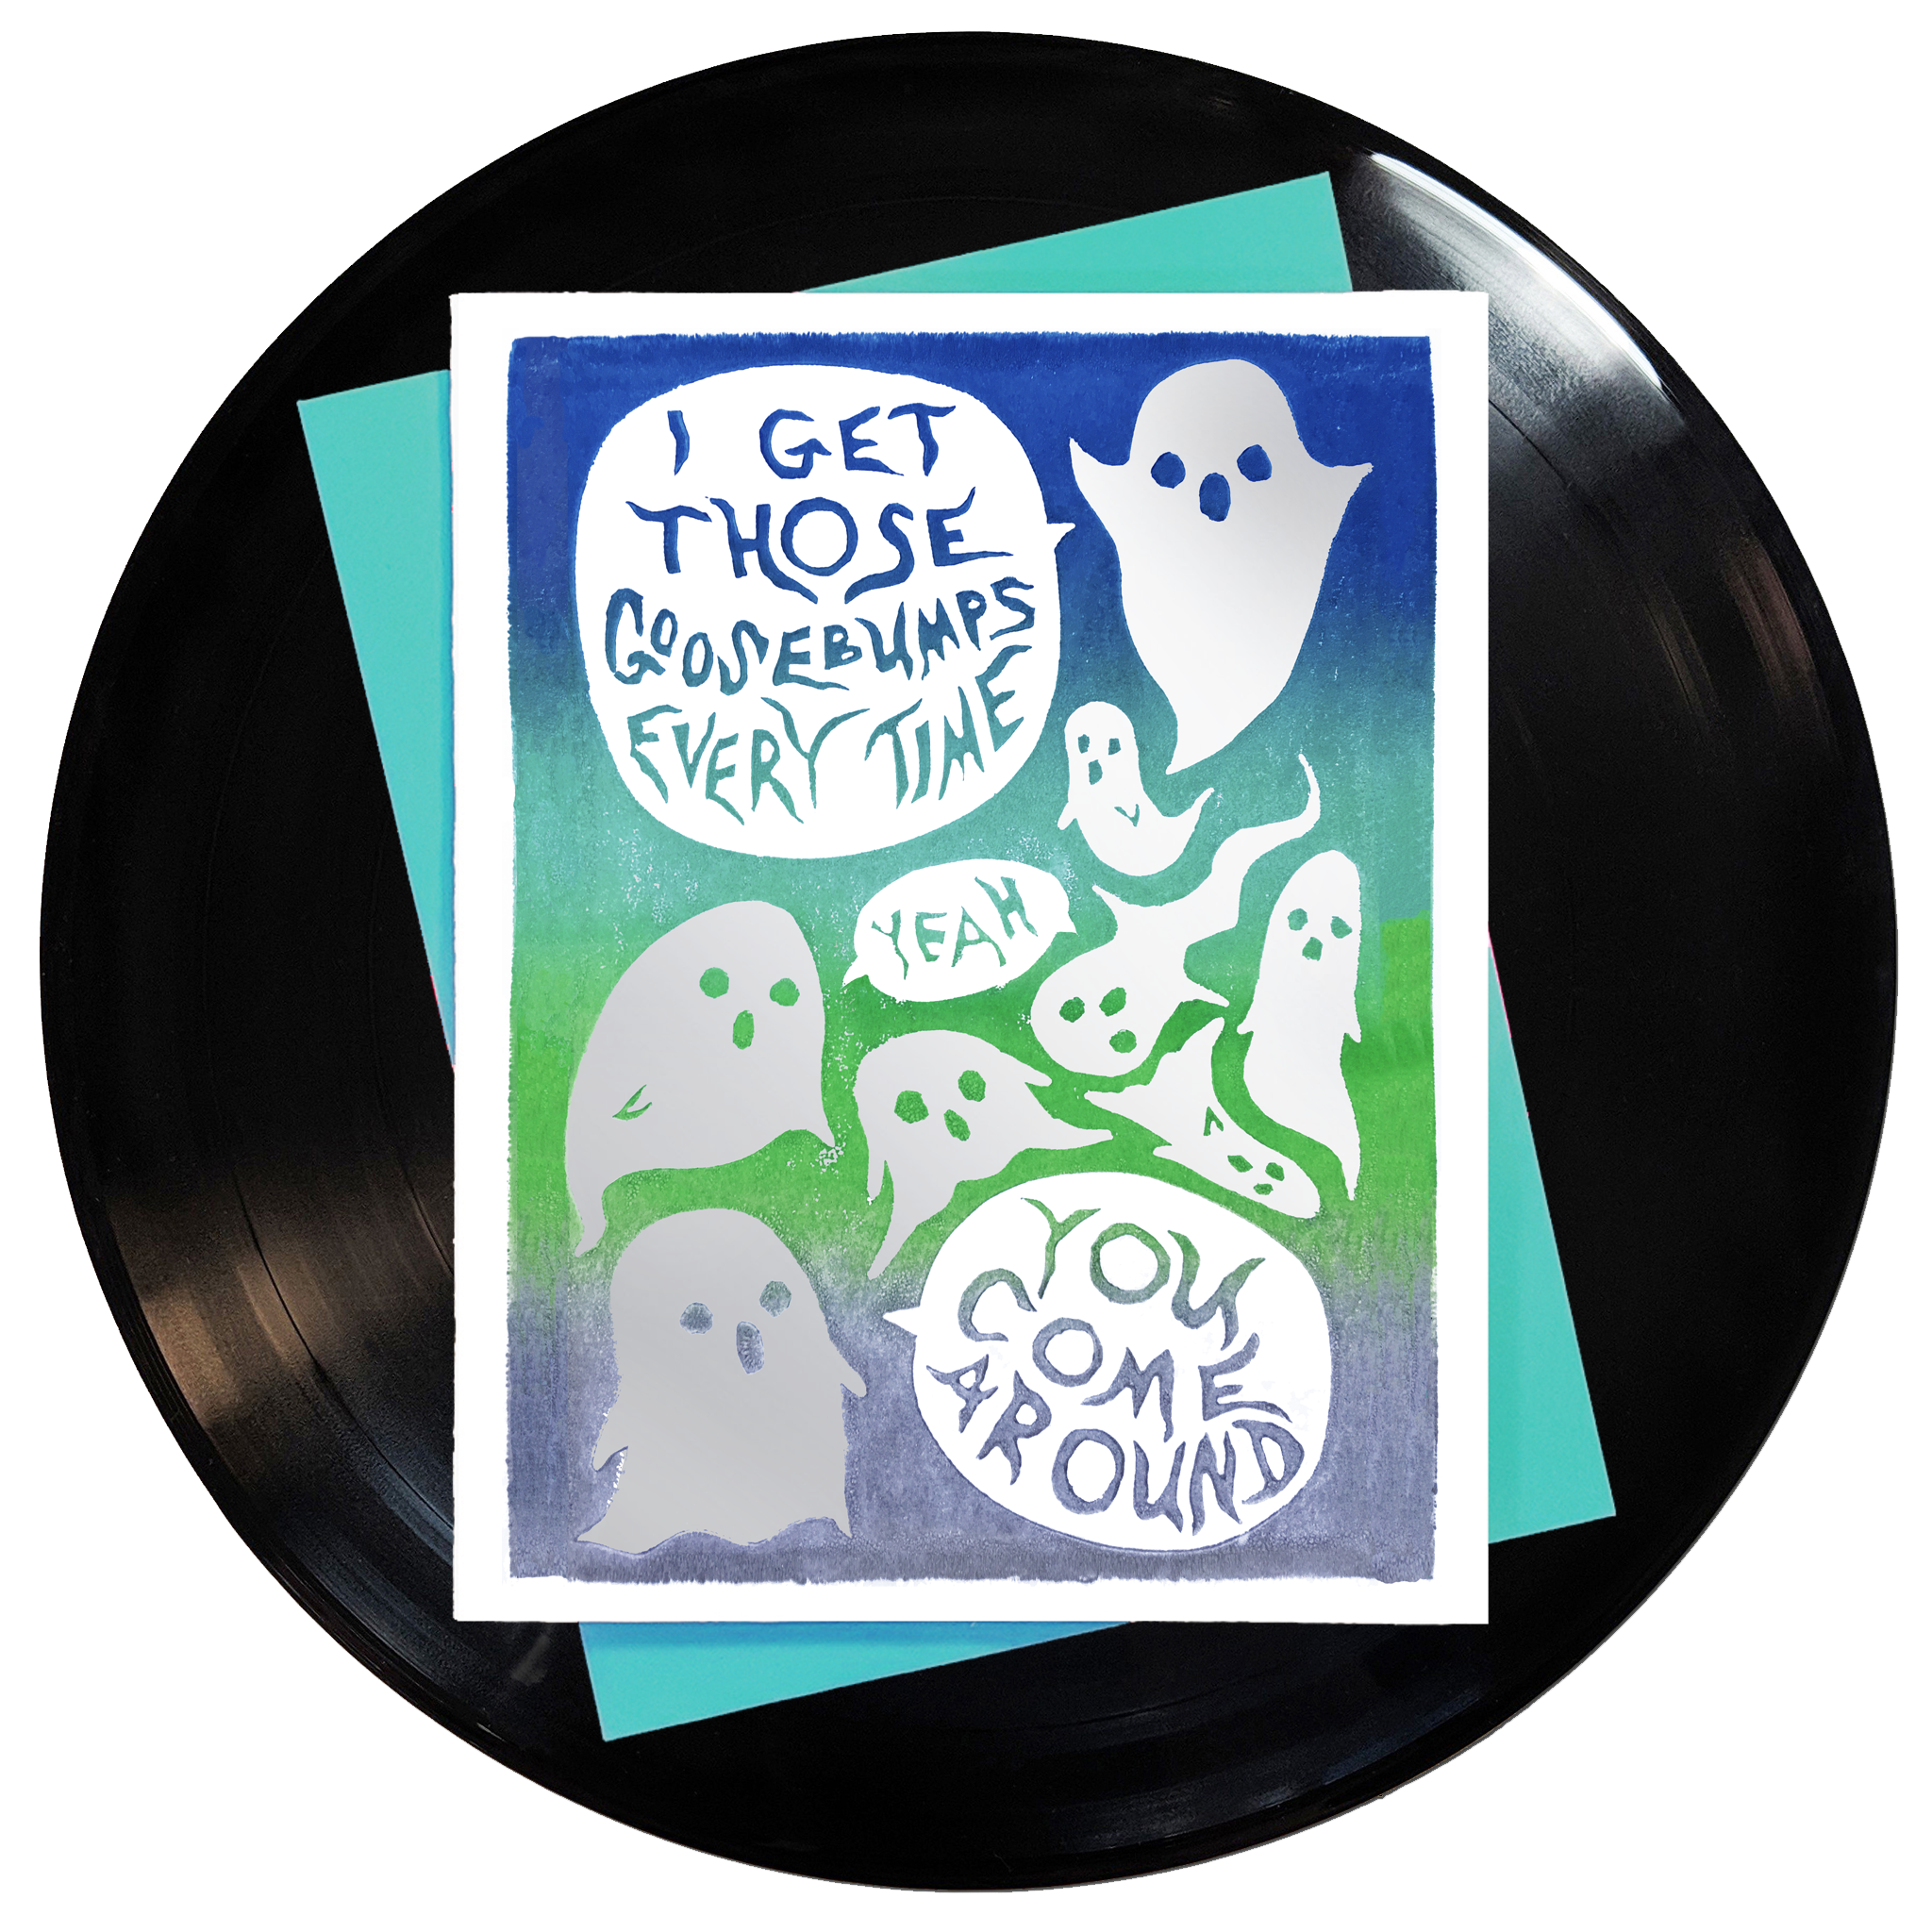 I Get Those Goosebumps Every Time Yeah You Come Around Greeting Card Inspired By Music